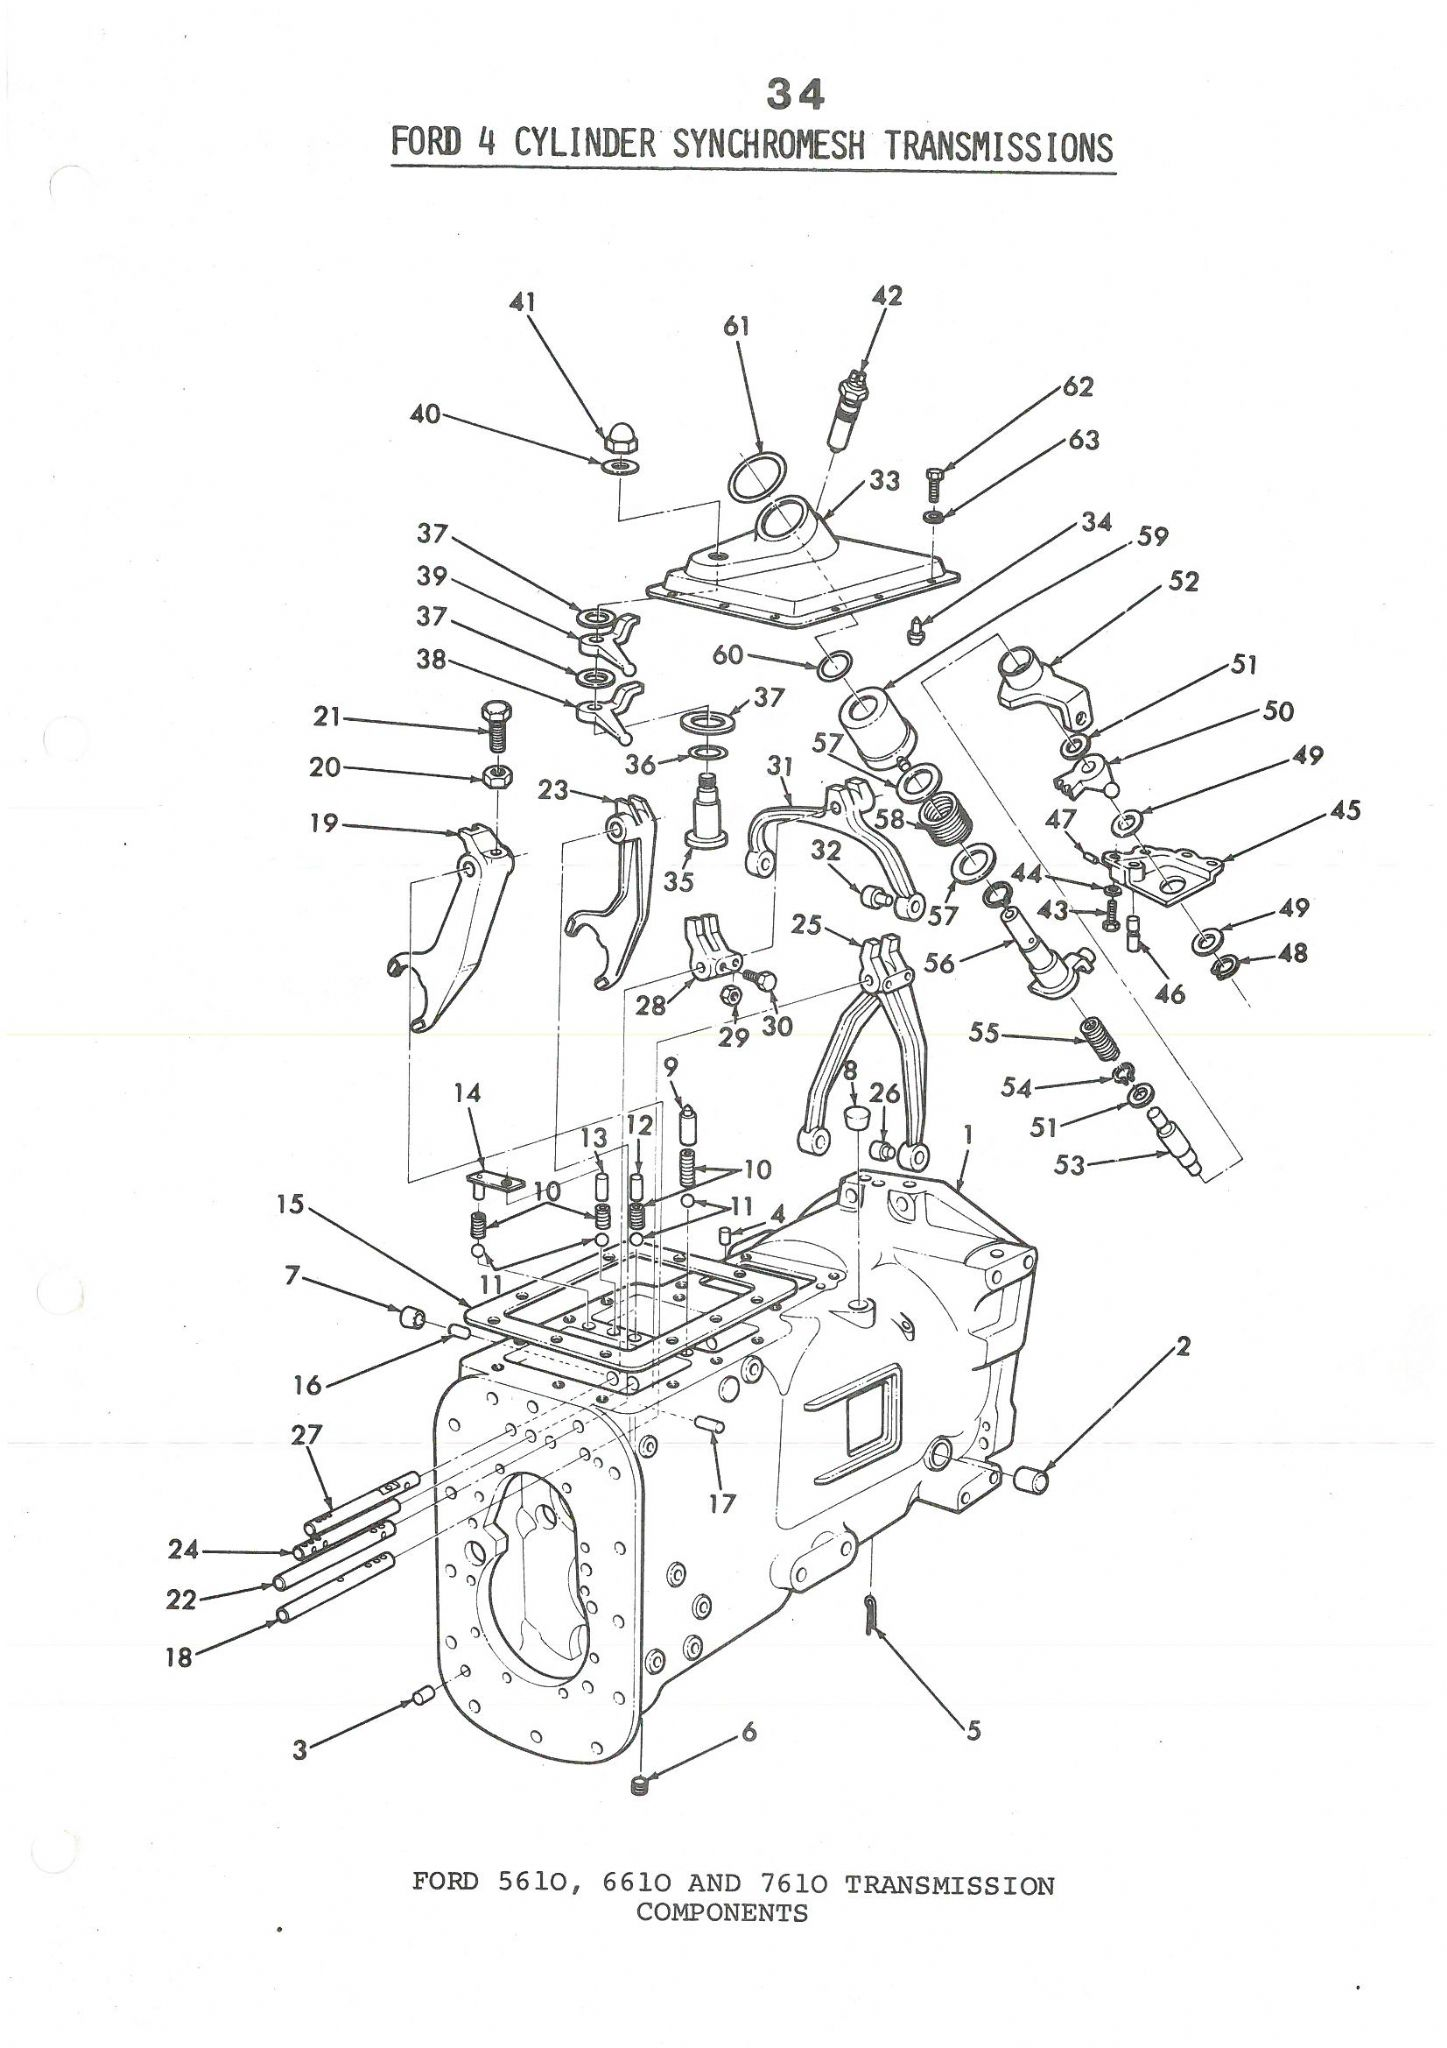 Ford 3610 Tractor Wiring Diagram | eStrategyS.co  Ford Tractor Wiring Diagram on mf 135 tractor wiring diagram, 3610 ford tractor parts diagram, ford 2000 tractor parts diagram,